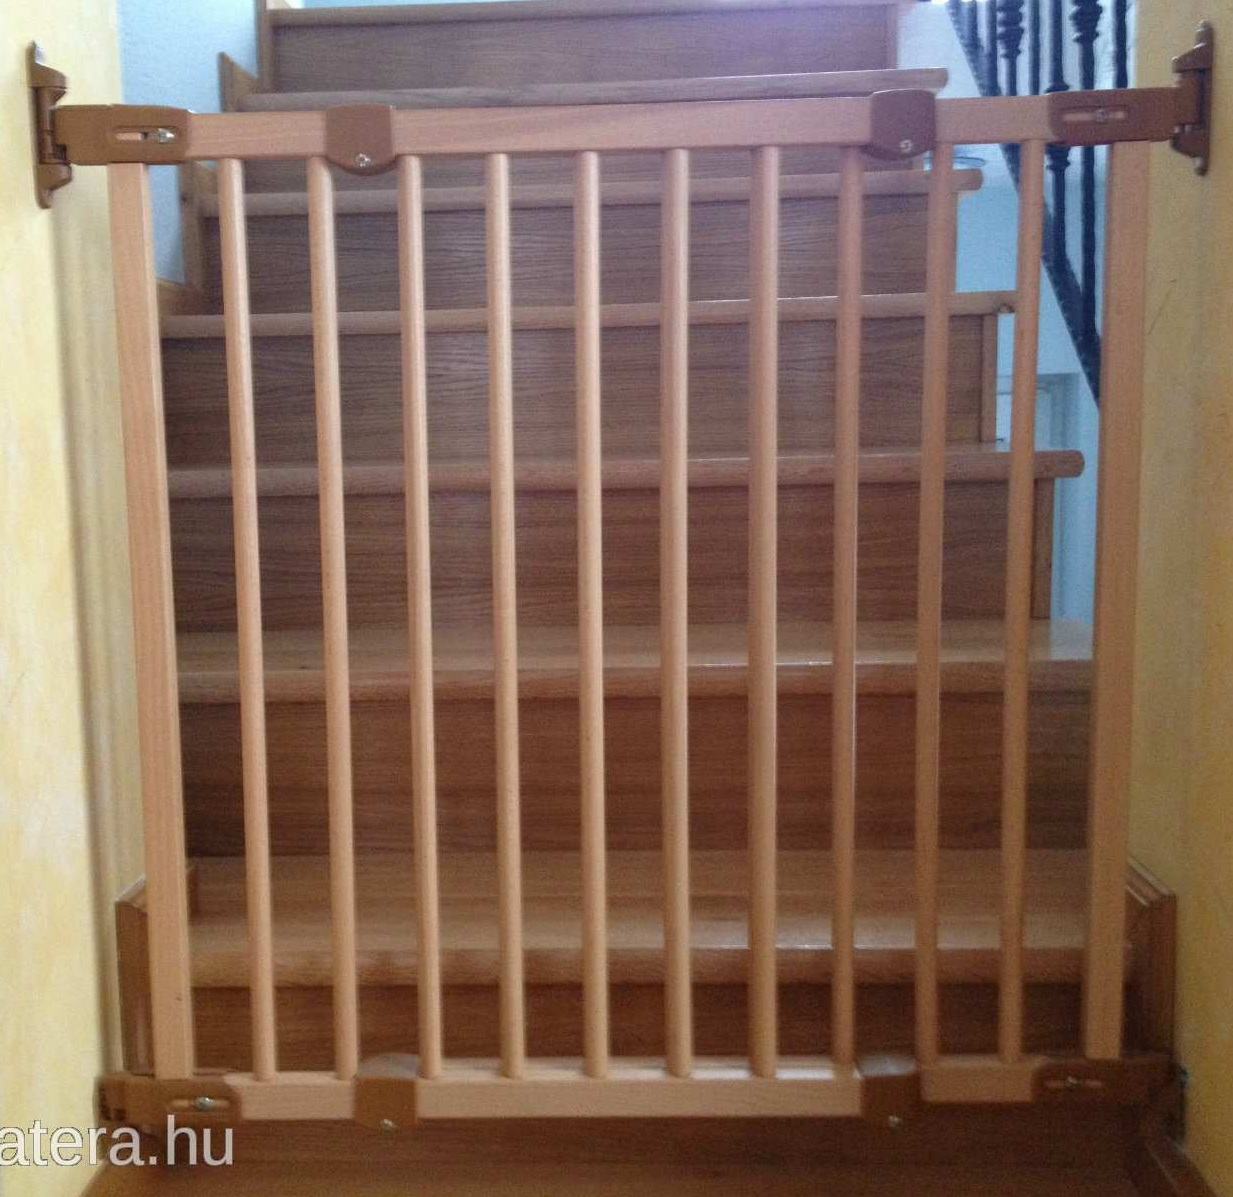 ikea patrull wooden baby gate. Black Bedroom Furniture Sets. Home Design Ideas